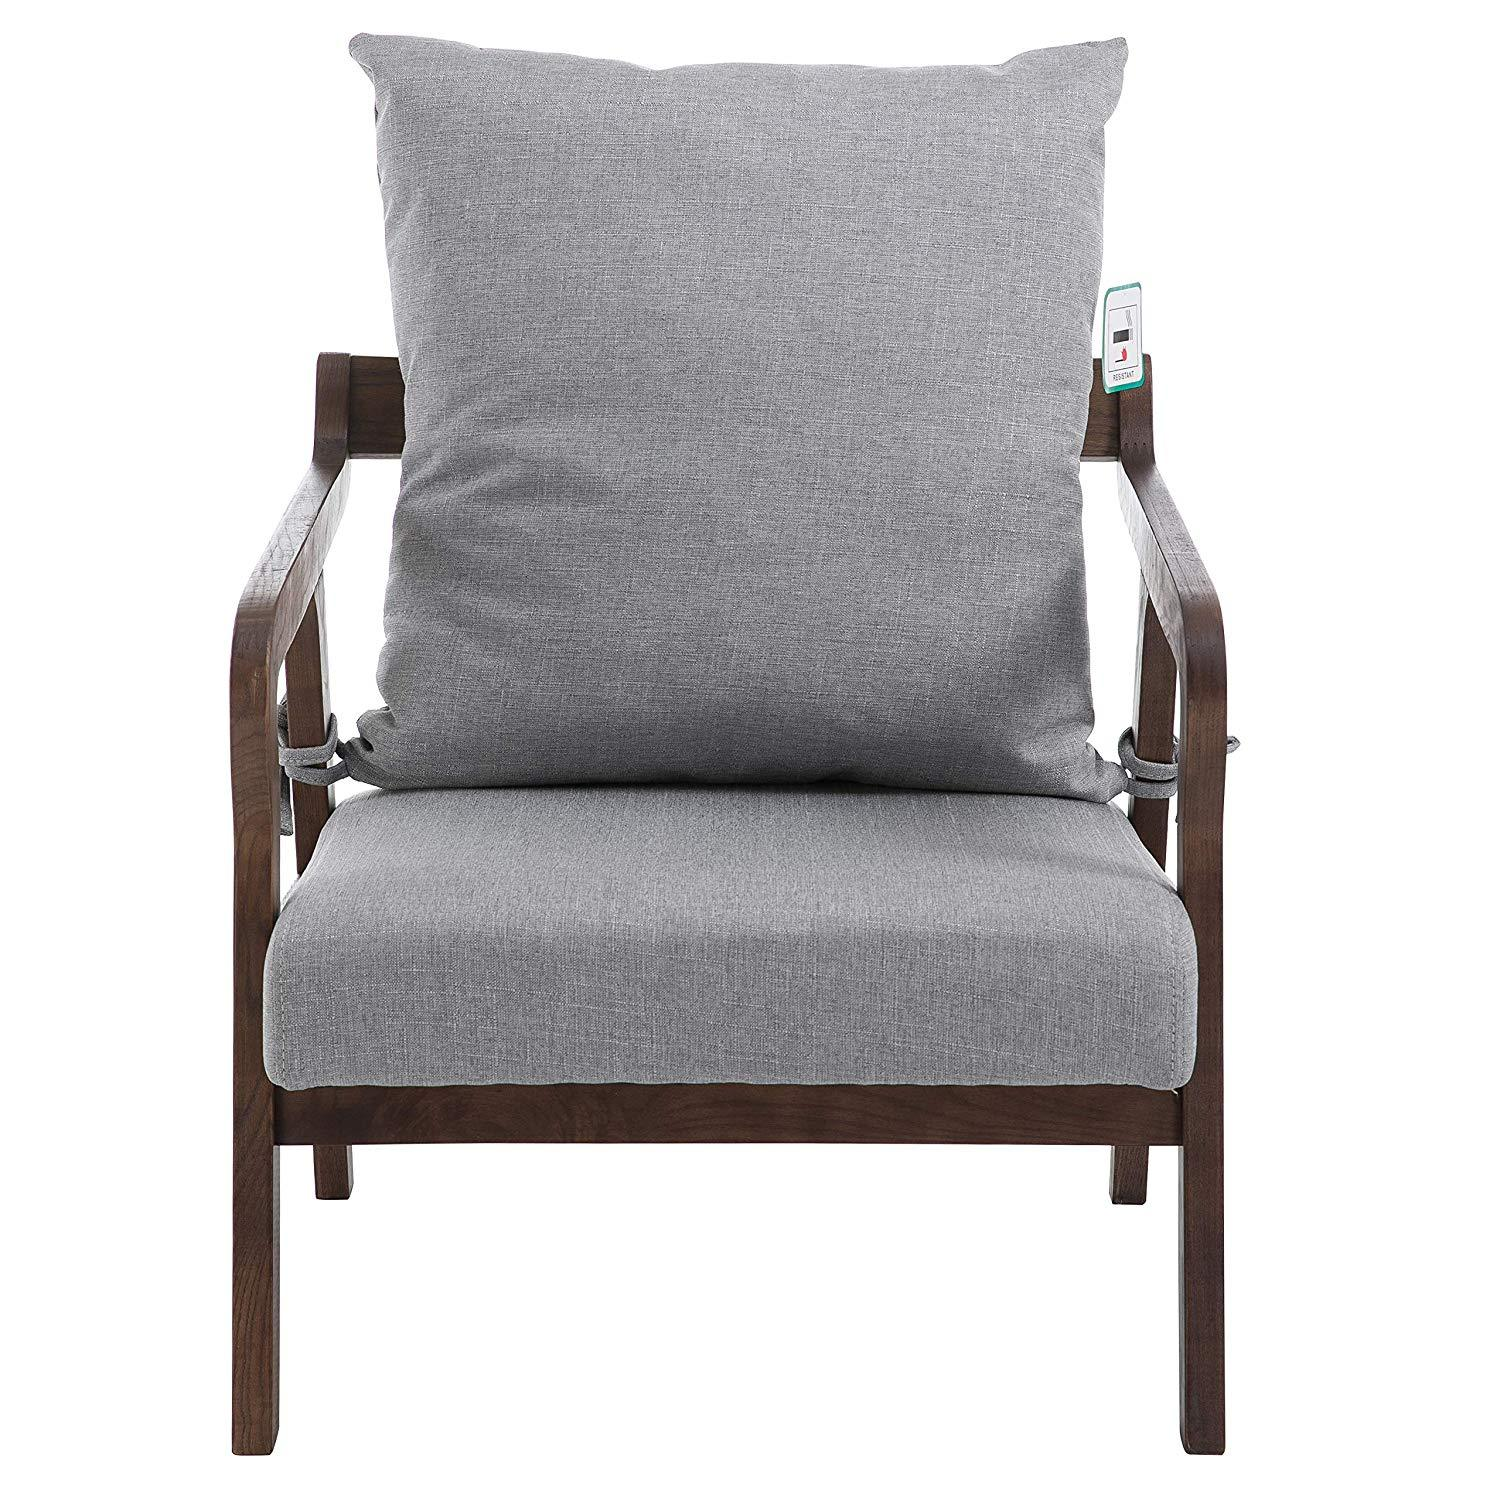 Bentwood Grey Fabric Armchair Accent Chair with Solid Wood ...